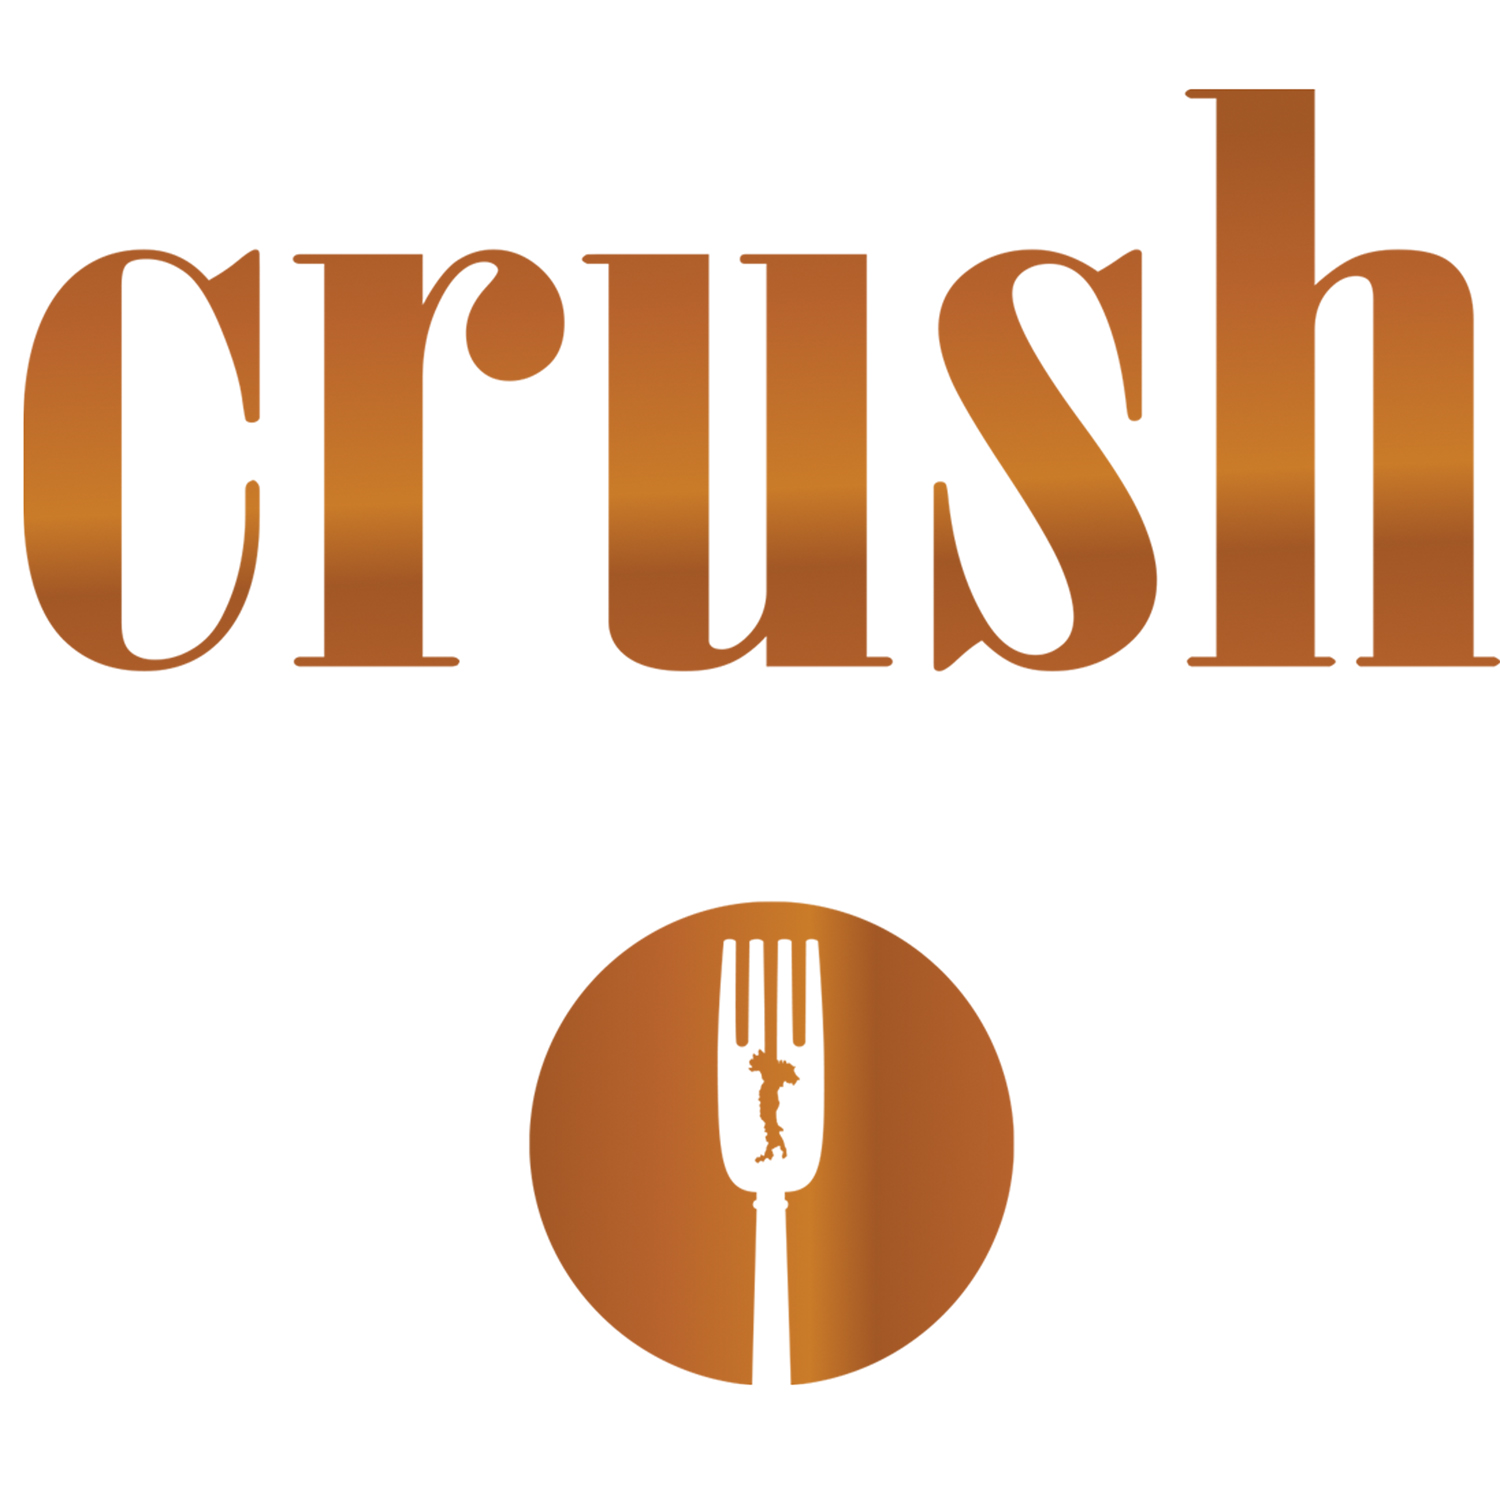 Crush_logo_no-shadow copy-Square.jpg